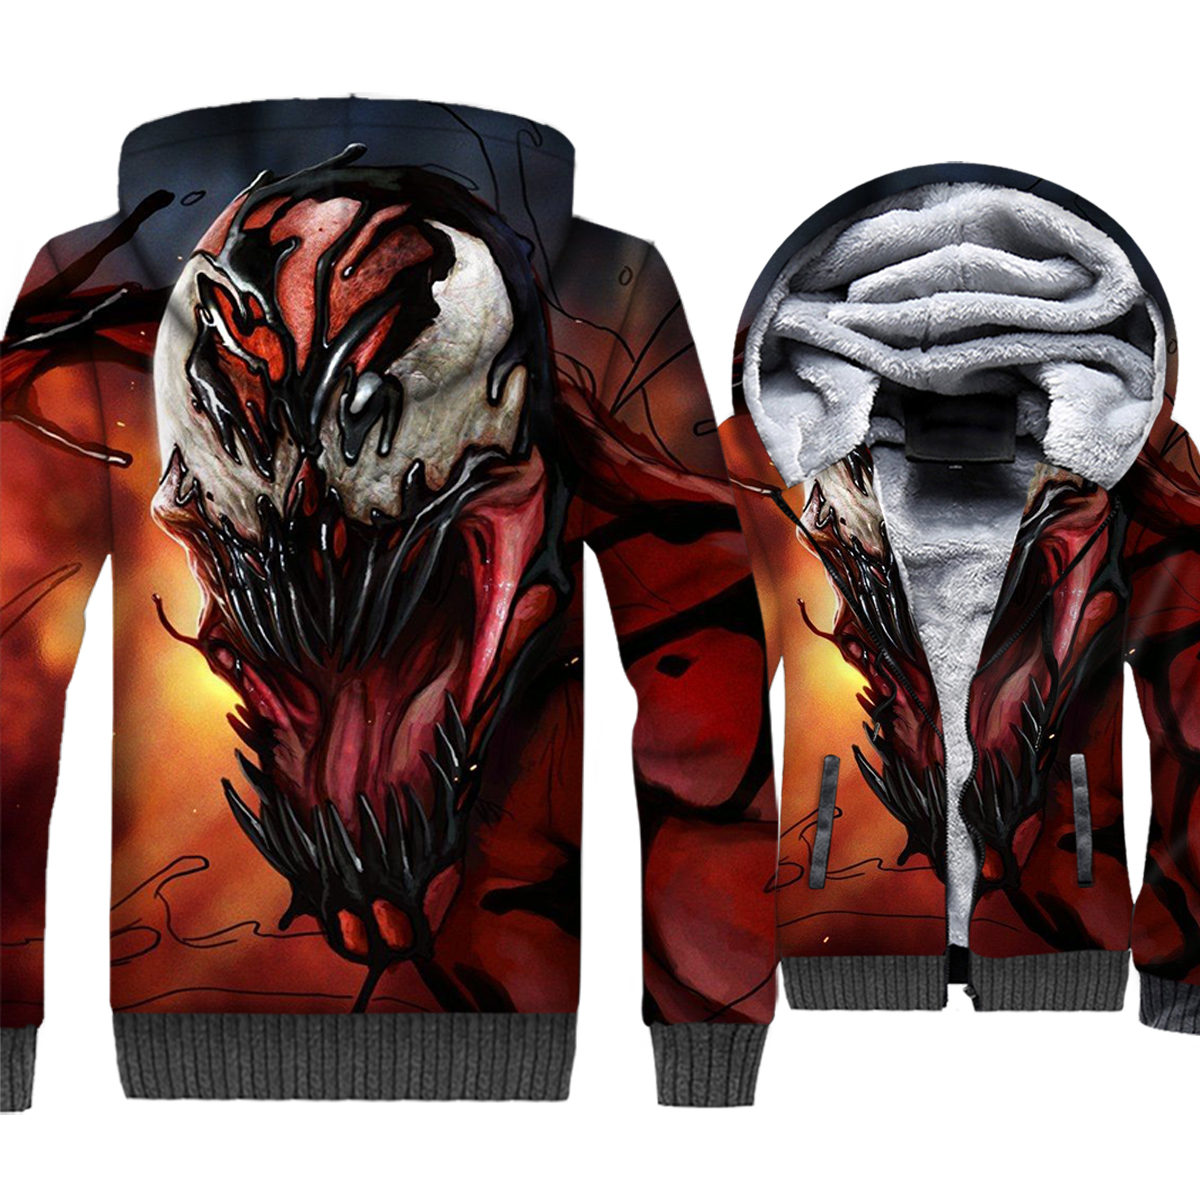 Venom clothes men harajuku hooded hoodies 2018 3D printed plus size sweatshirts Spiderman hipster Superhero jackets coats M-5XL